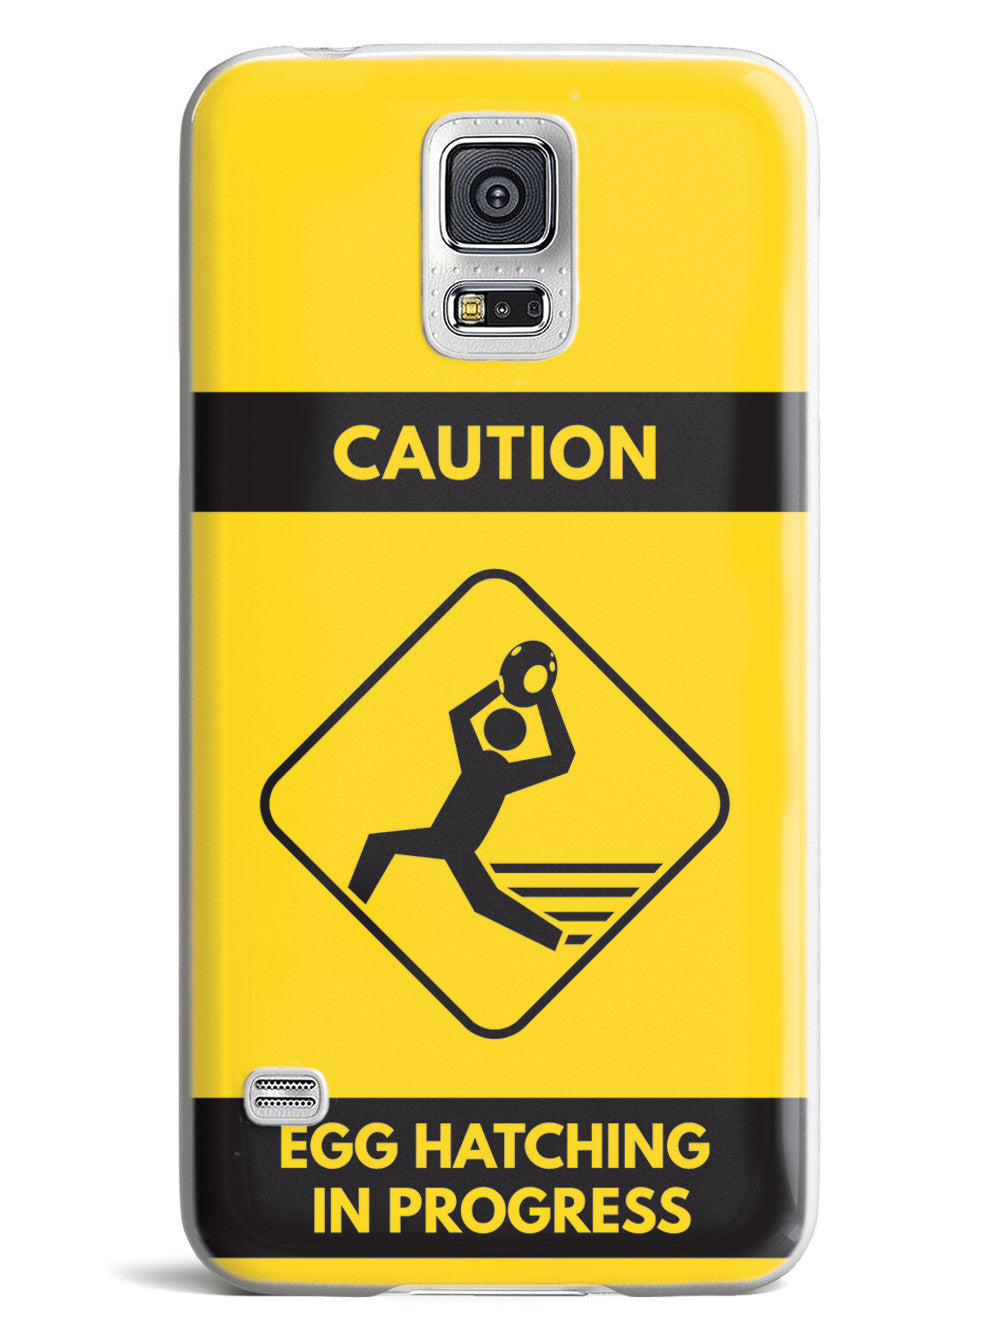 Egg Hatching In Progress - Yellow Case